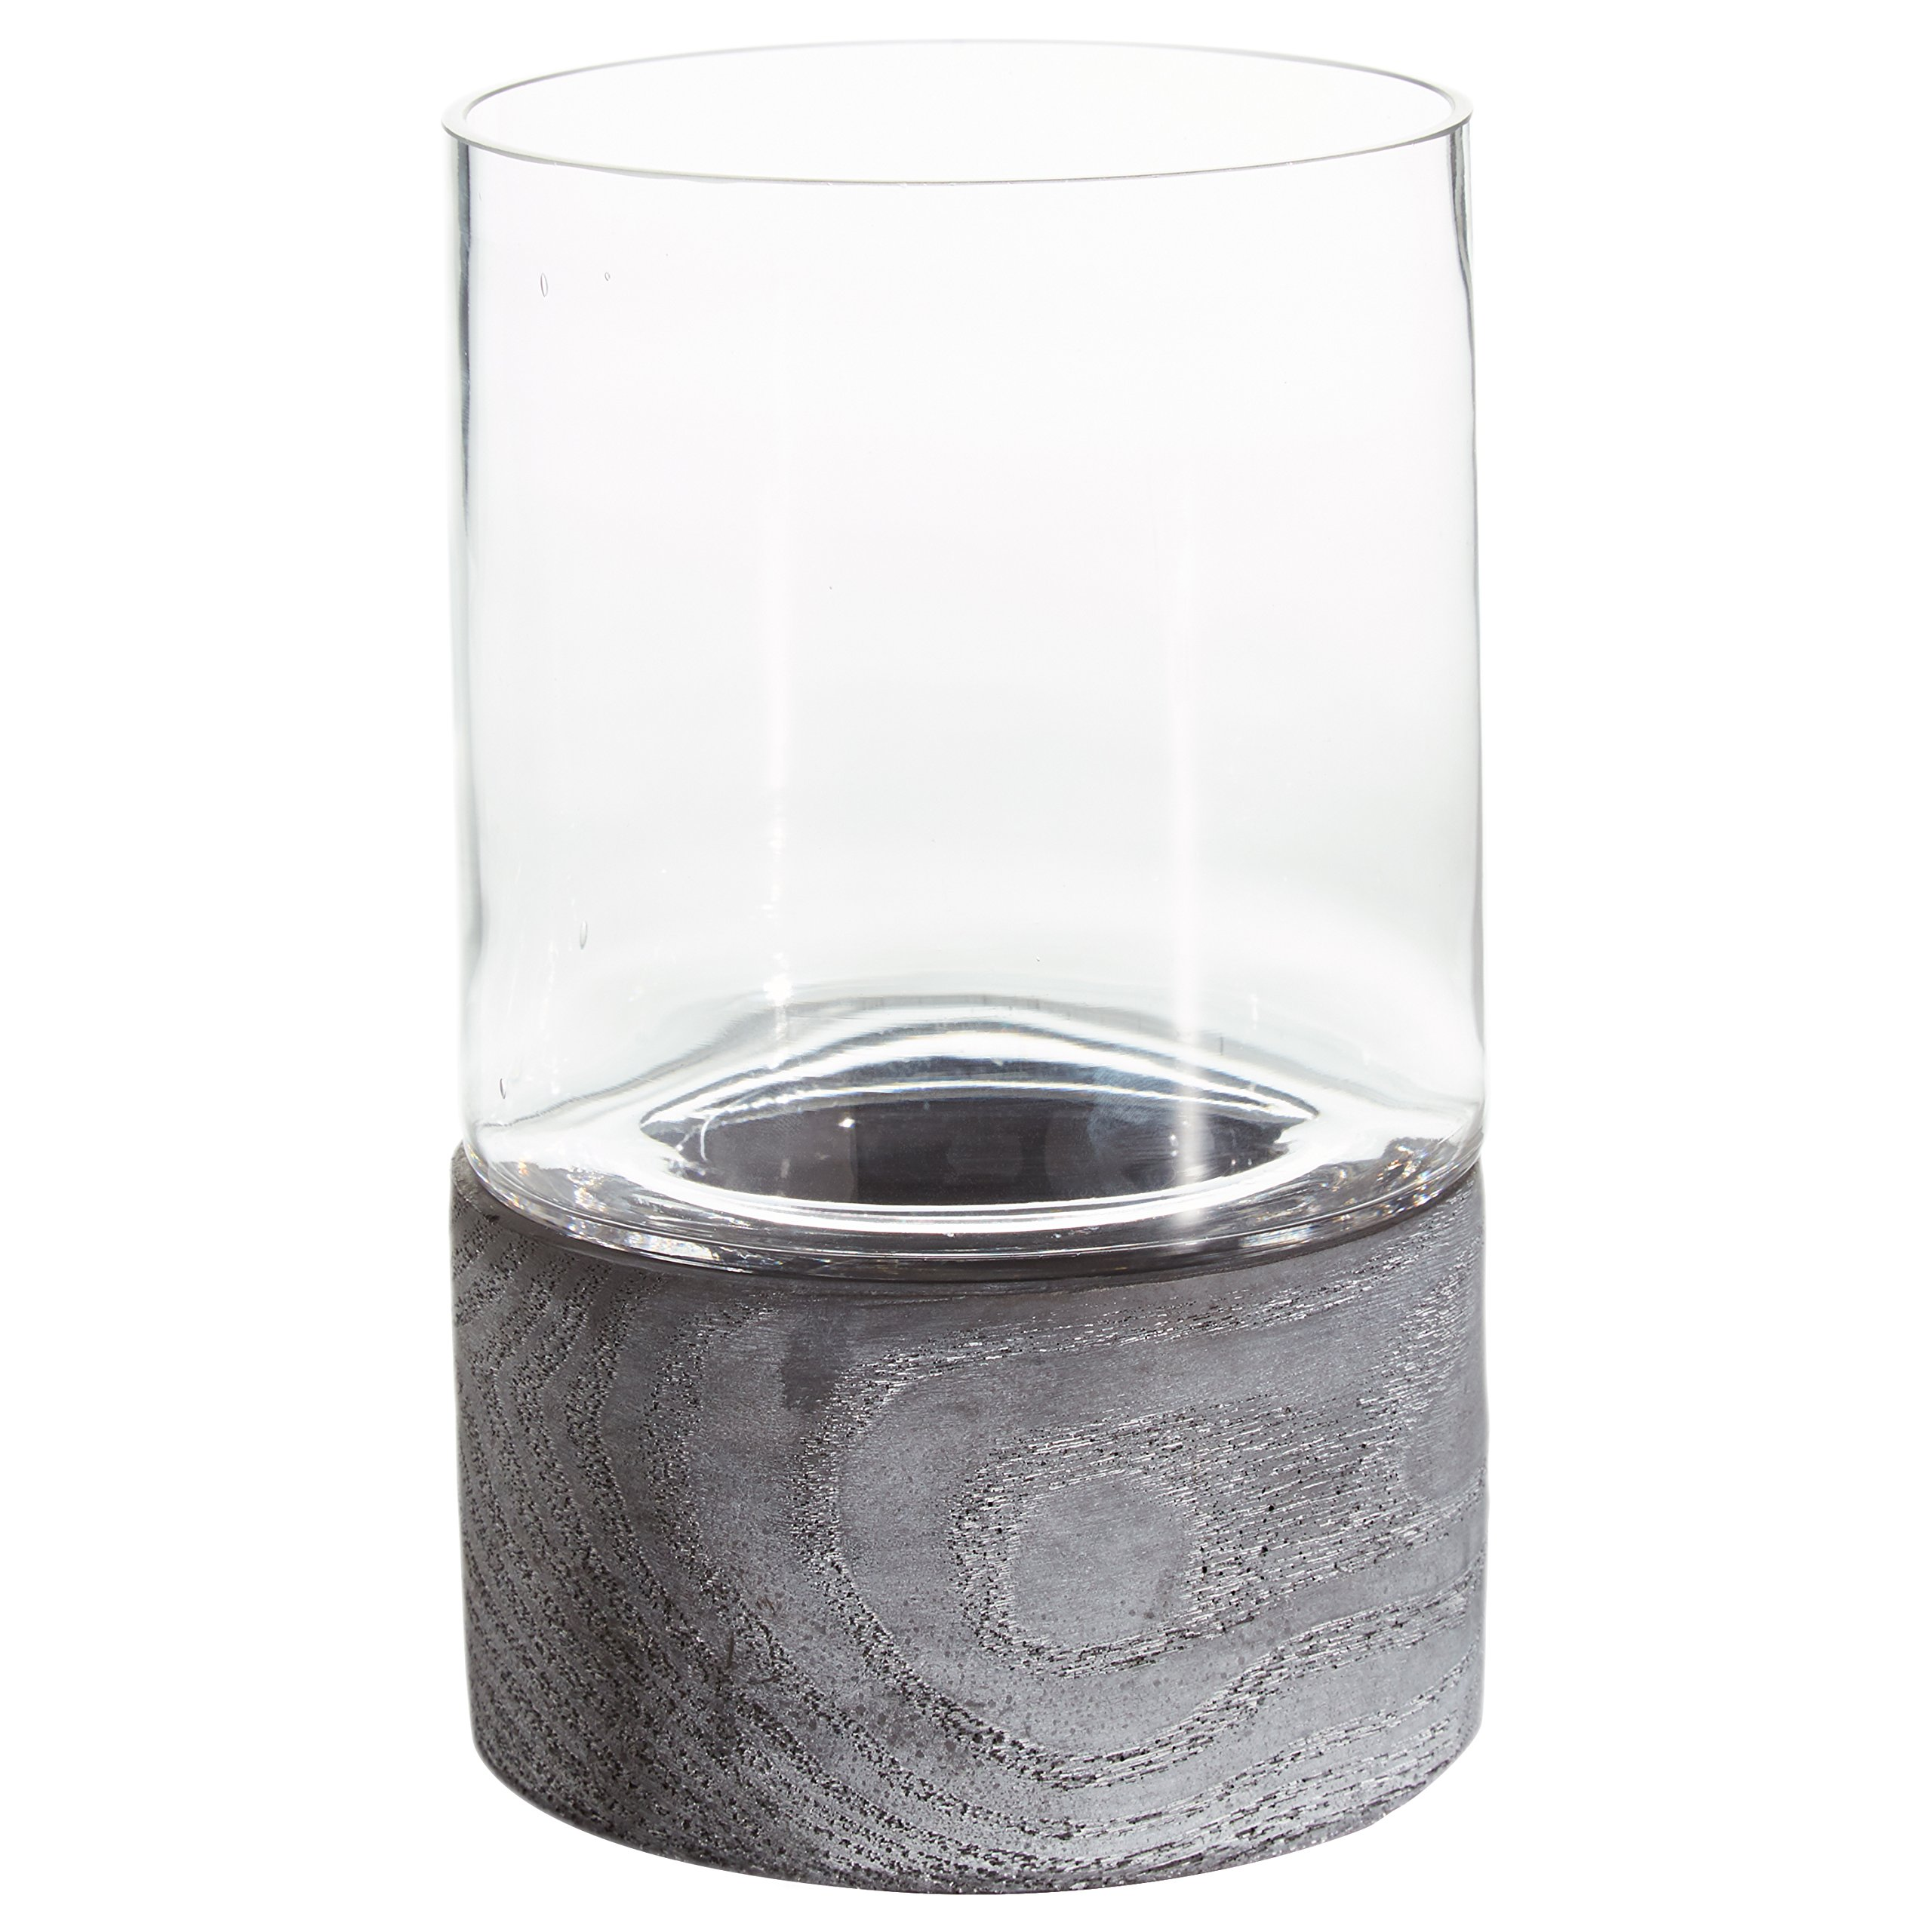 Rivet Mid Century Modern Concrete and Glass Decor Candle Holder - 8.8 Inch, Grey